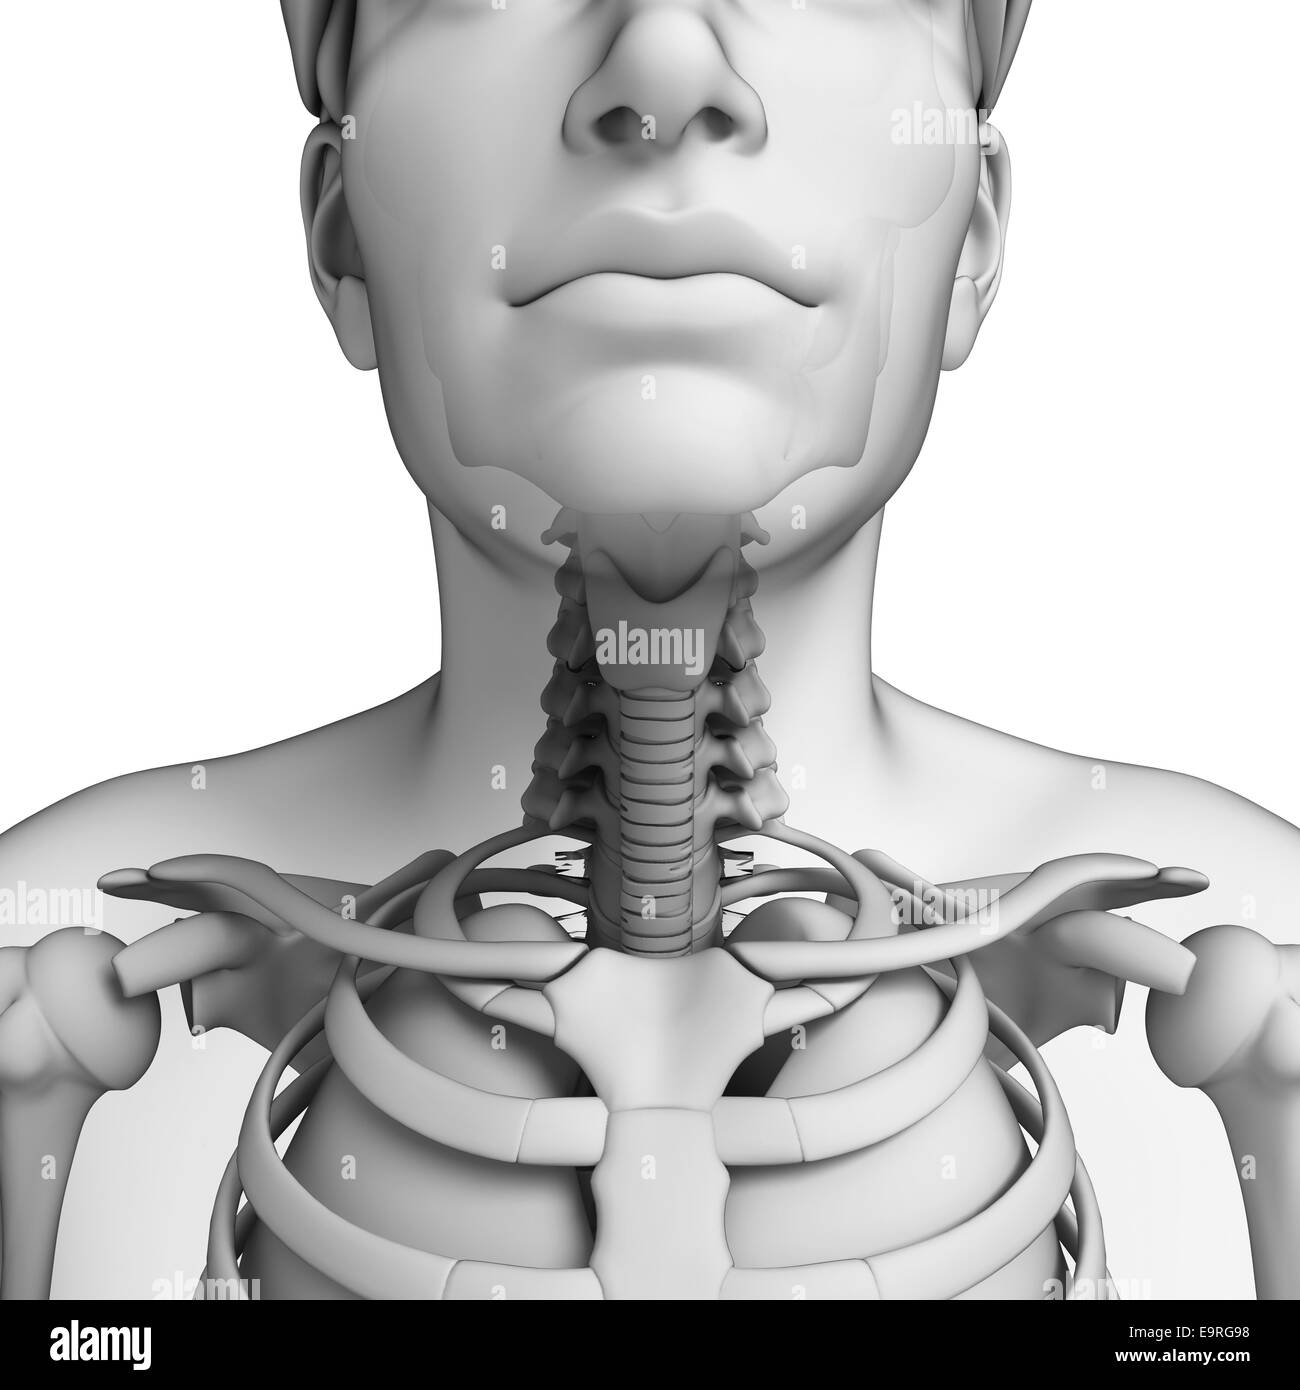 Thyroid Black and White Stock Photos & Images - Alamy